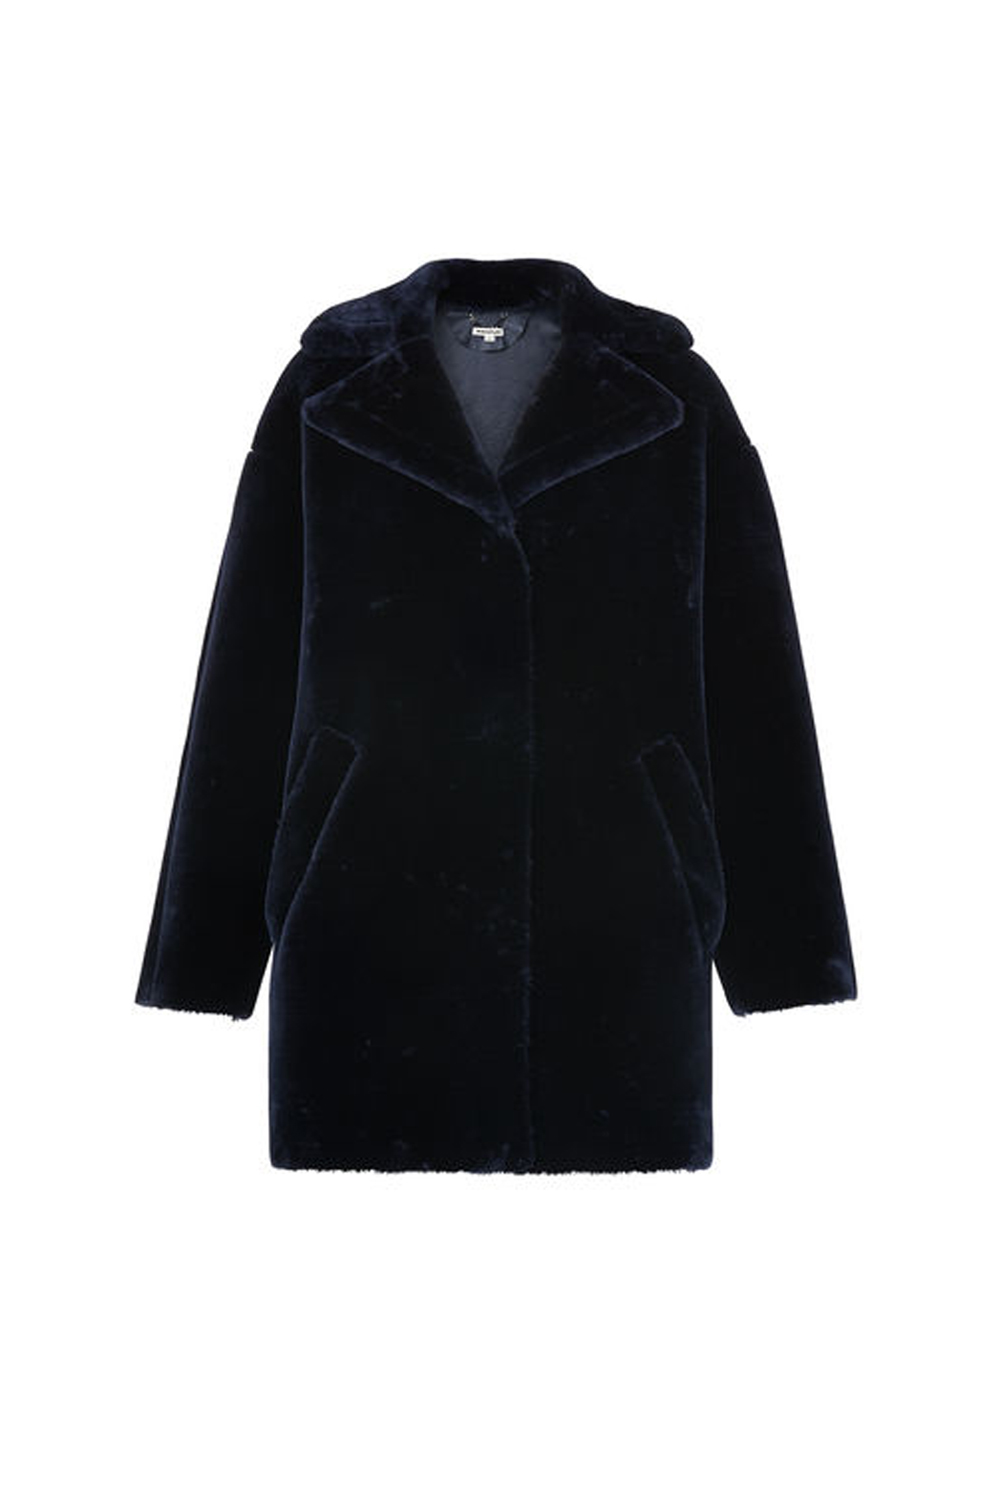 how to clean black winter coats